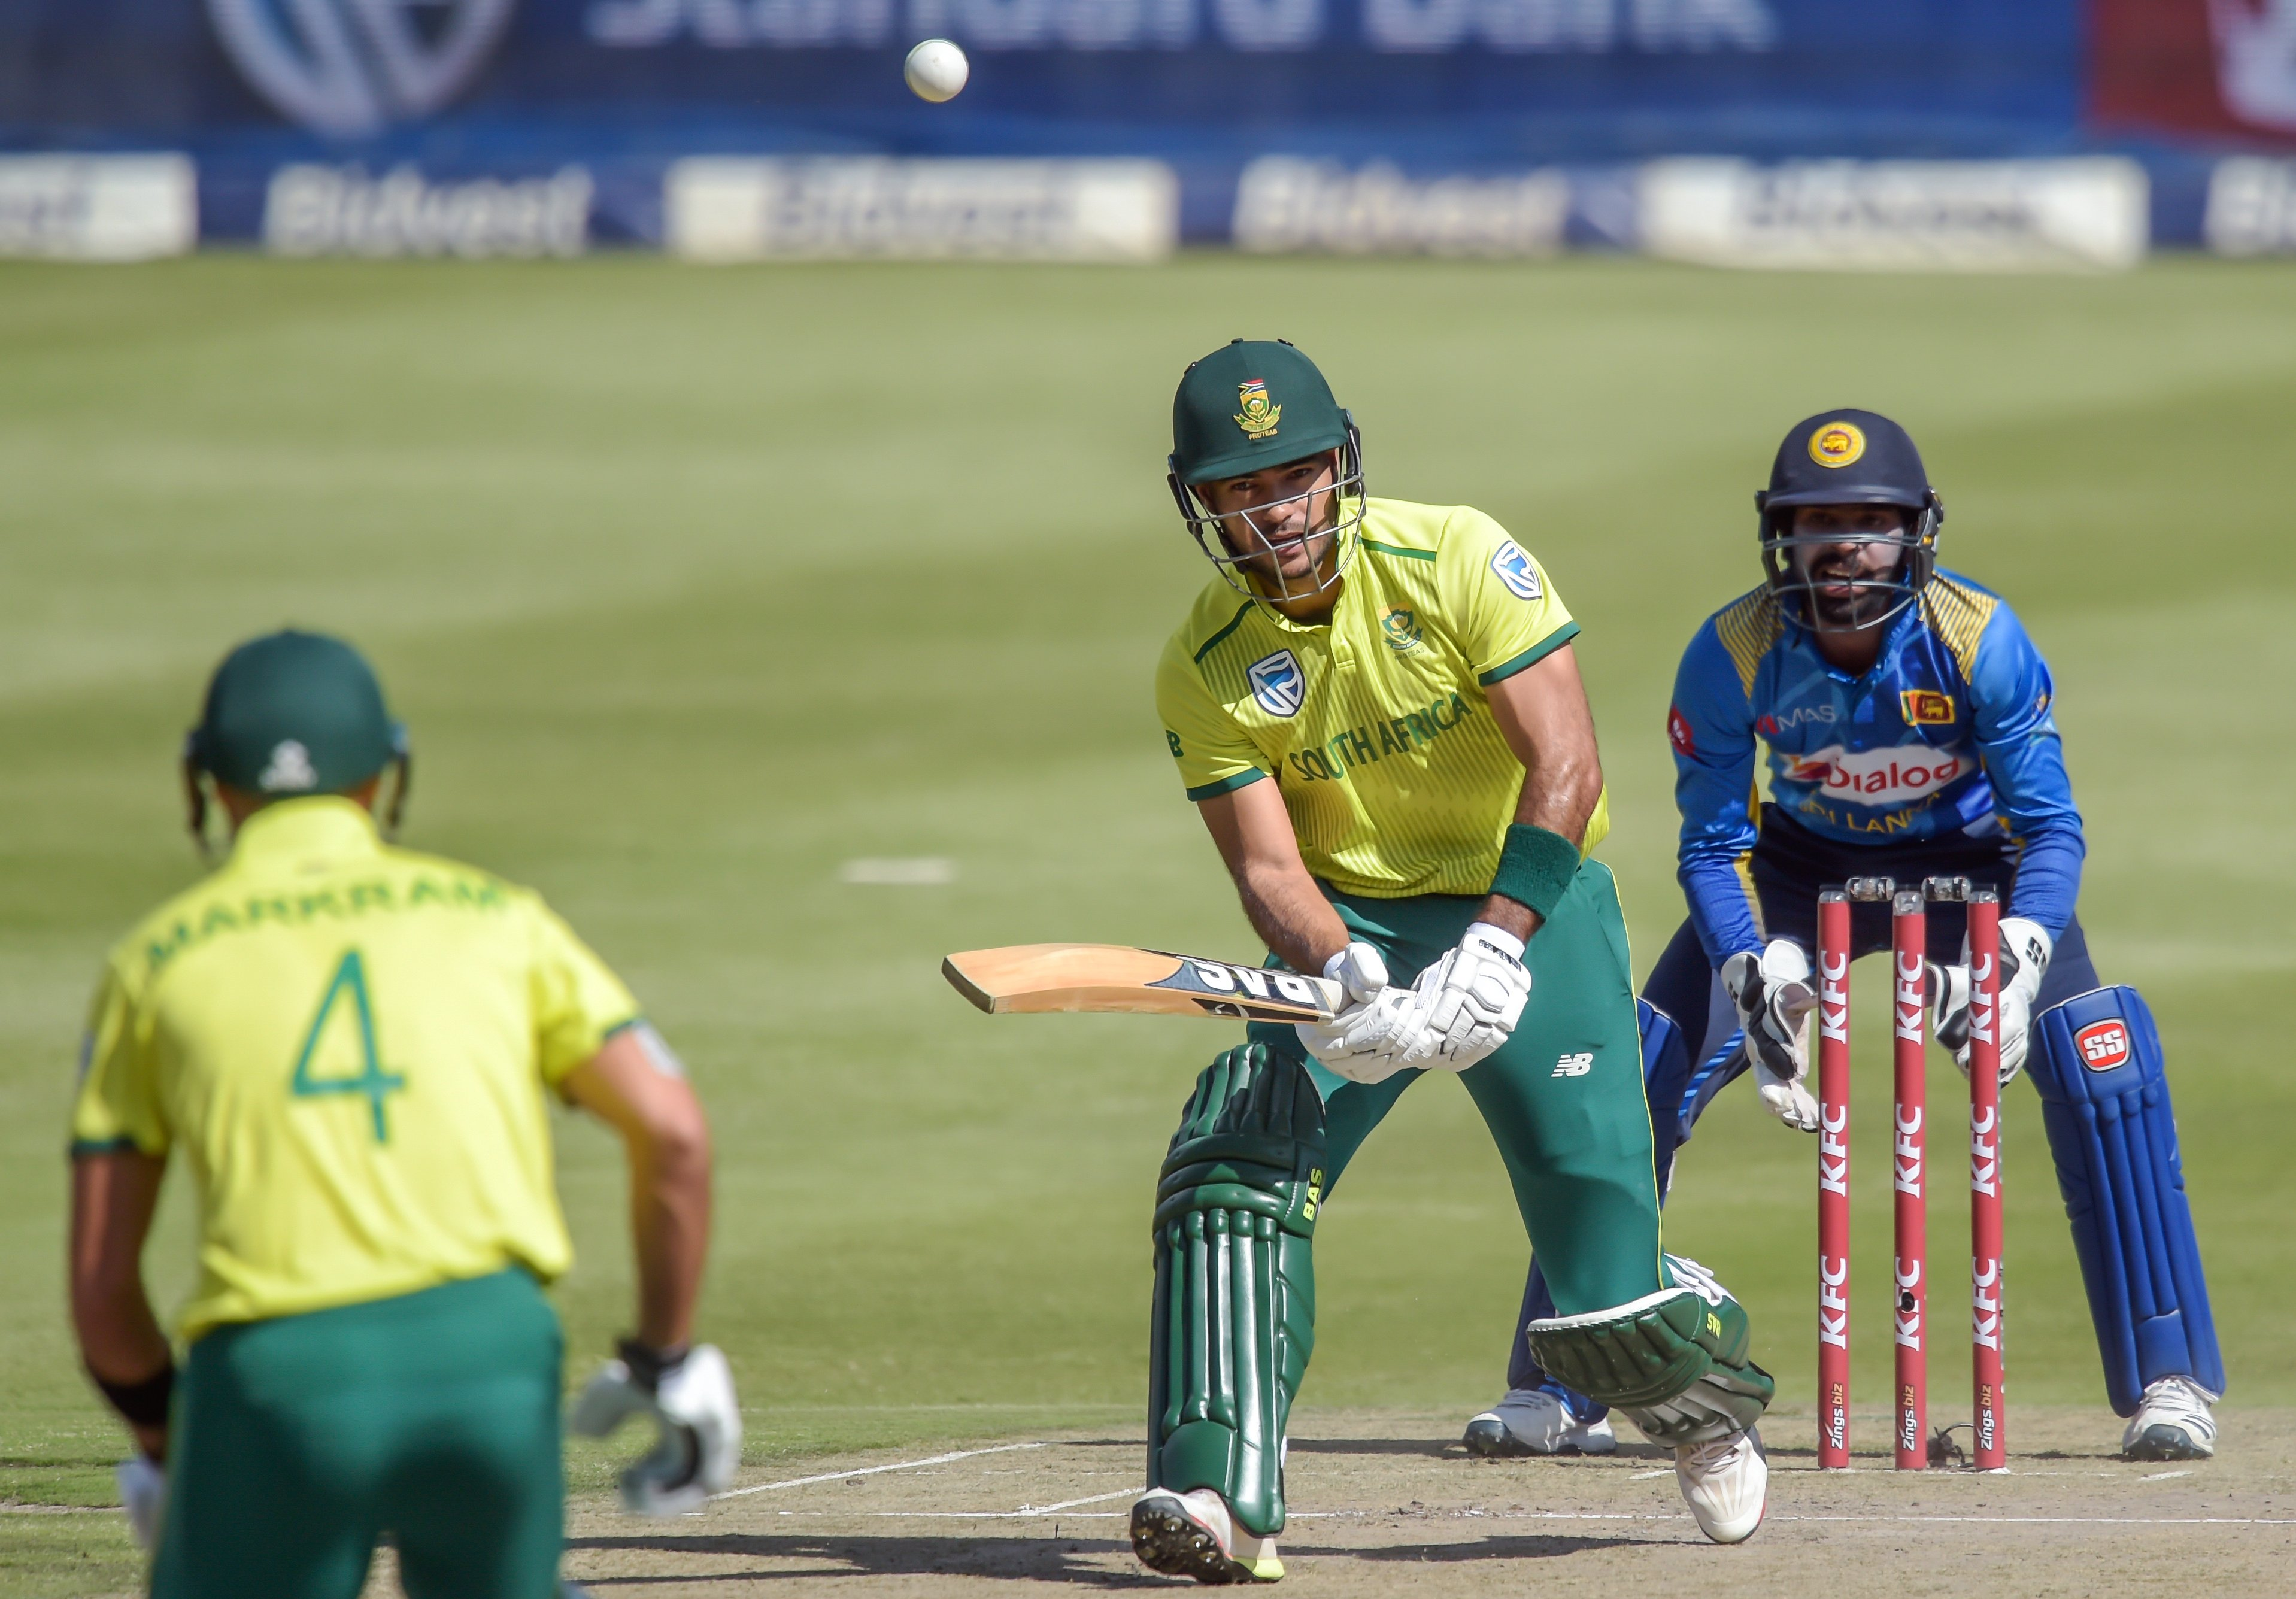 Promoted Pretorious fires the Proteas into healthy lead against Sri Lanka